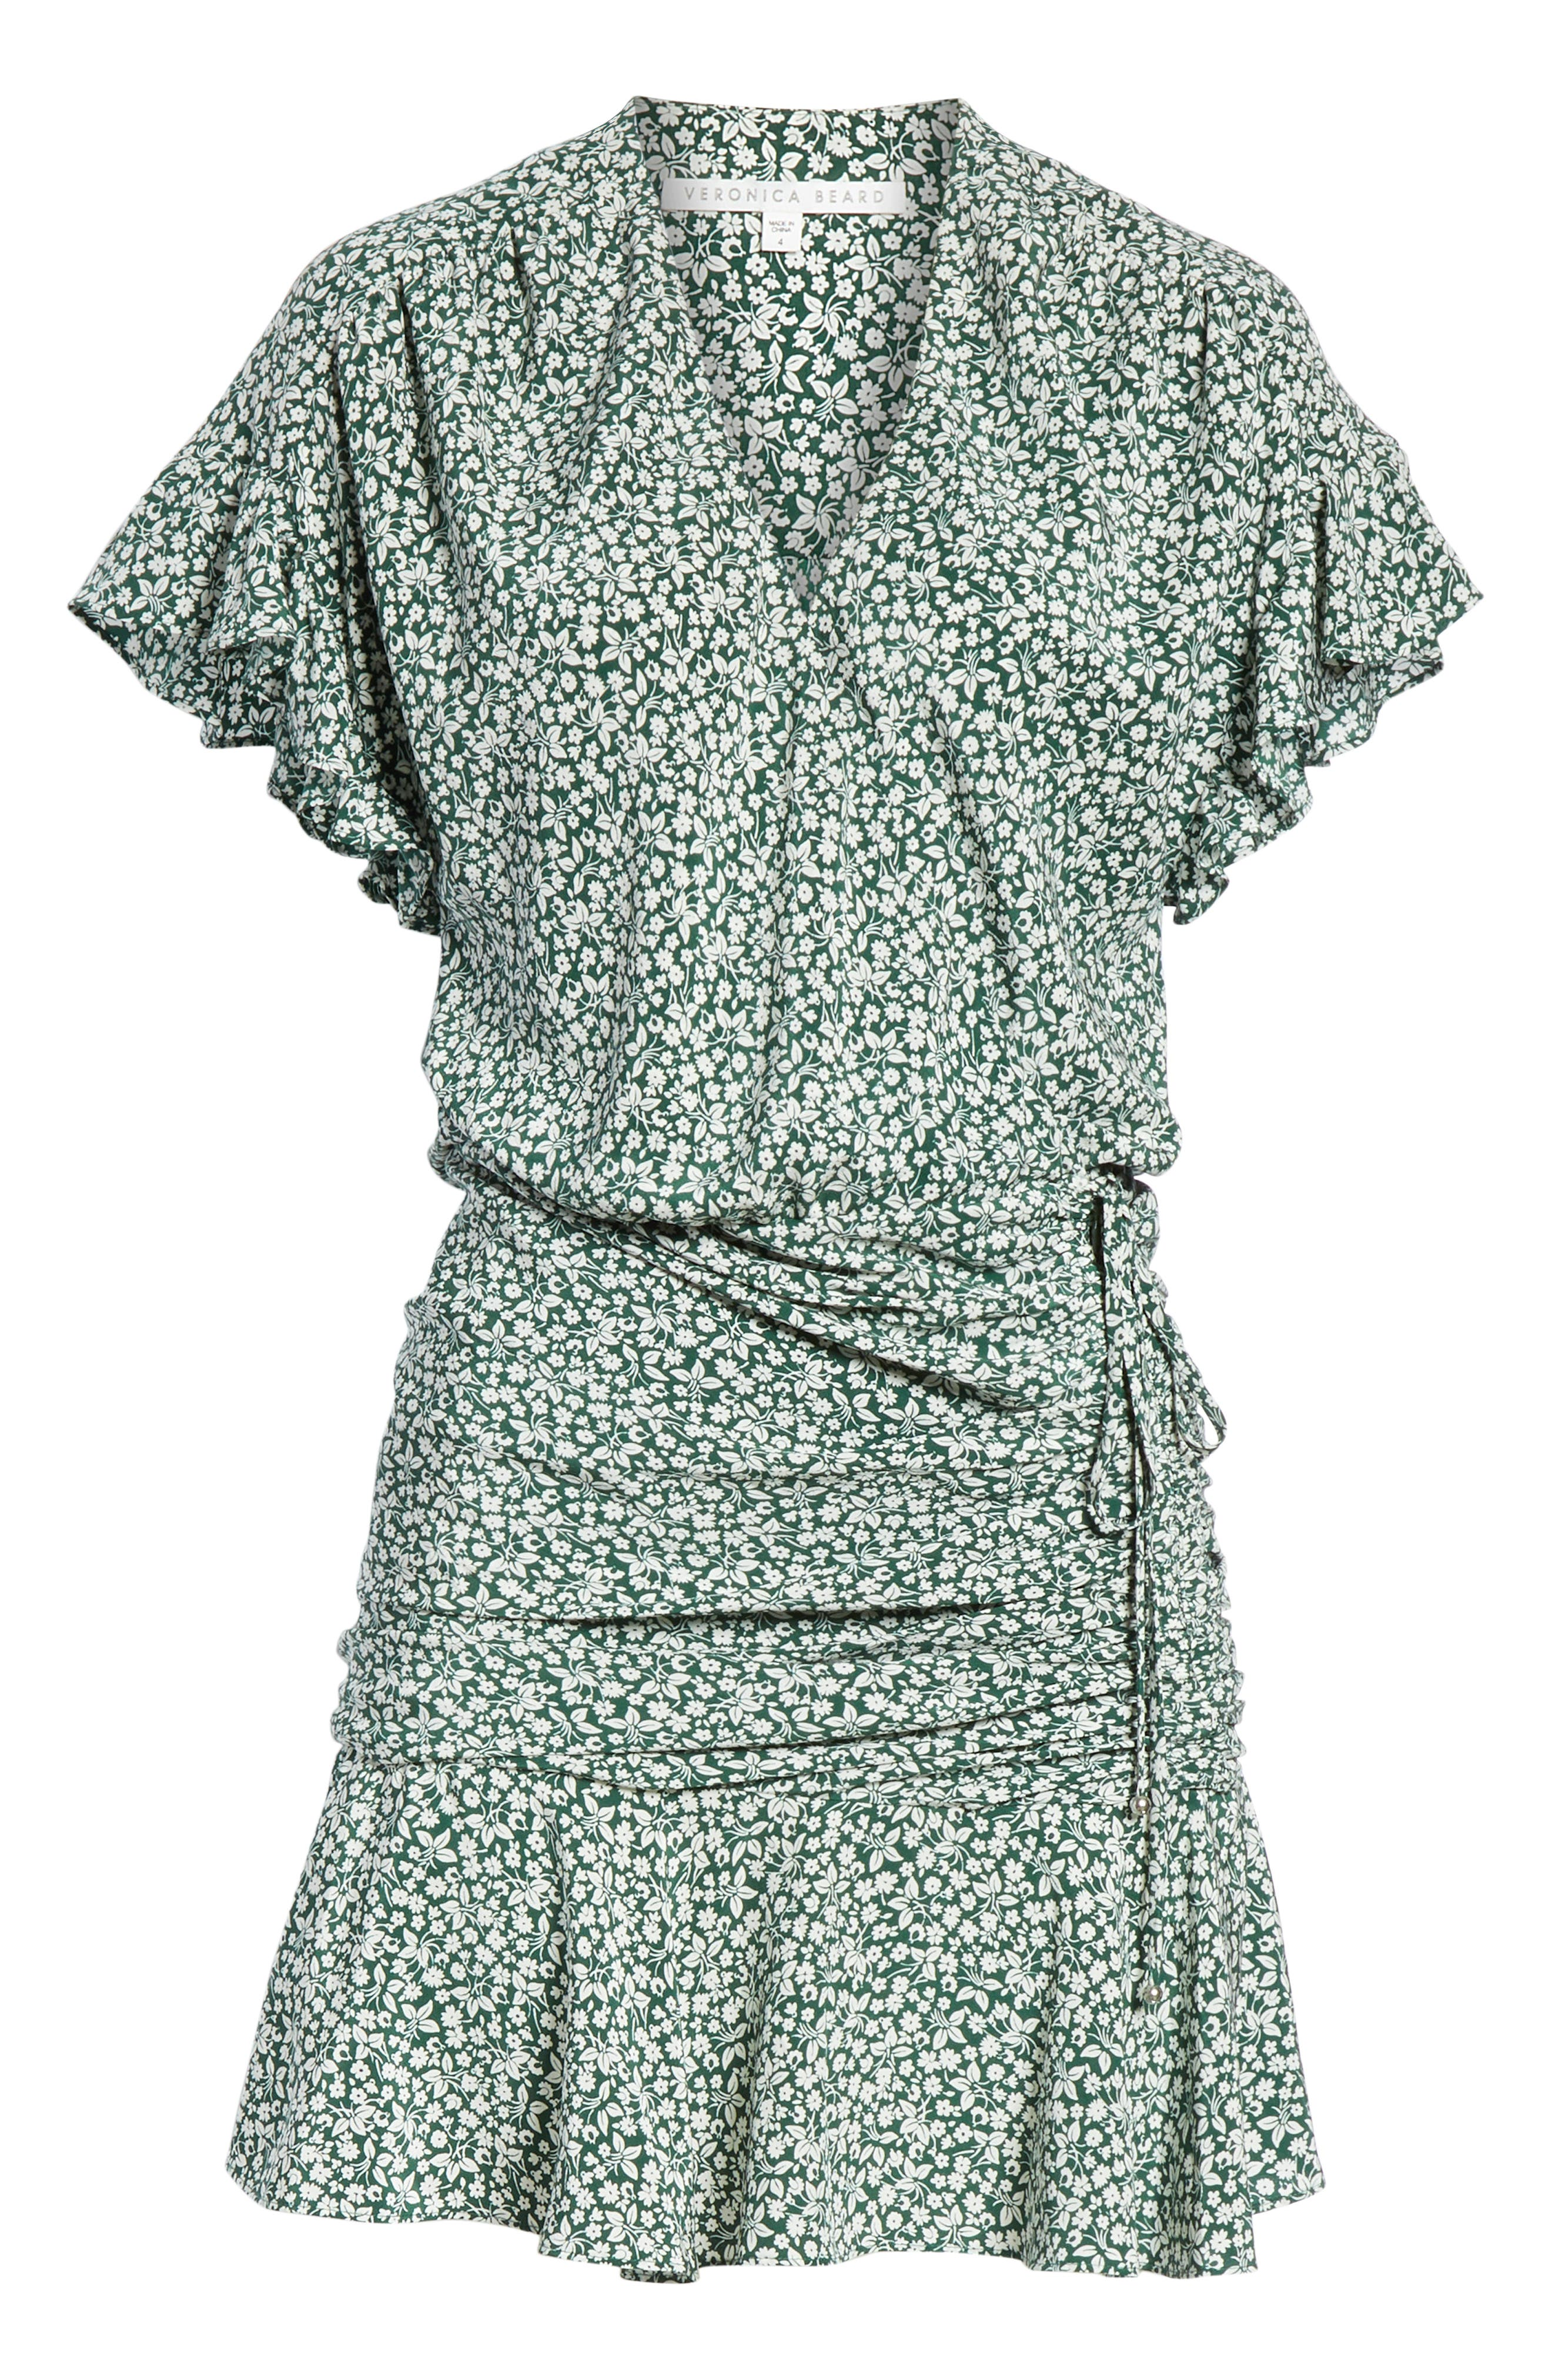 VERONICA BEARD, Marla Tie Ruched Silk Minidress, Alternate thumbnail 7, color, FOREST GREEN